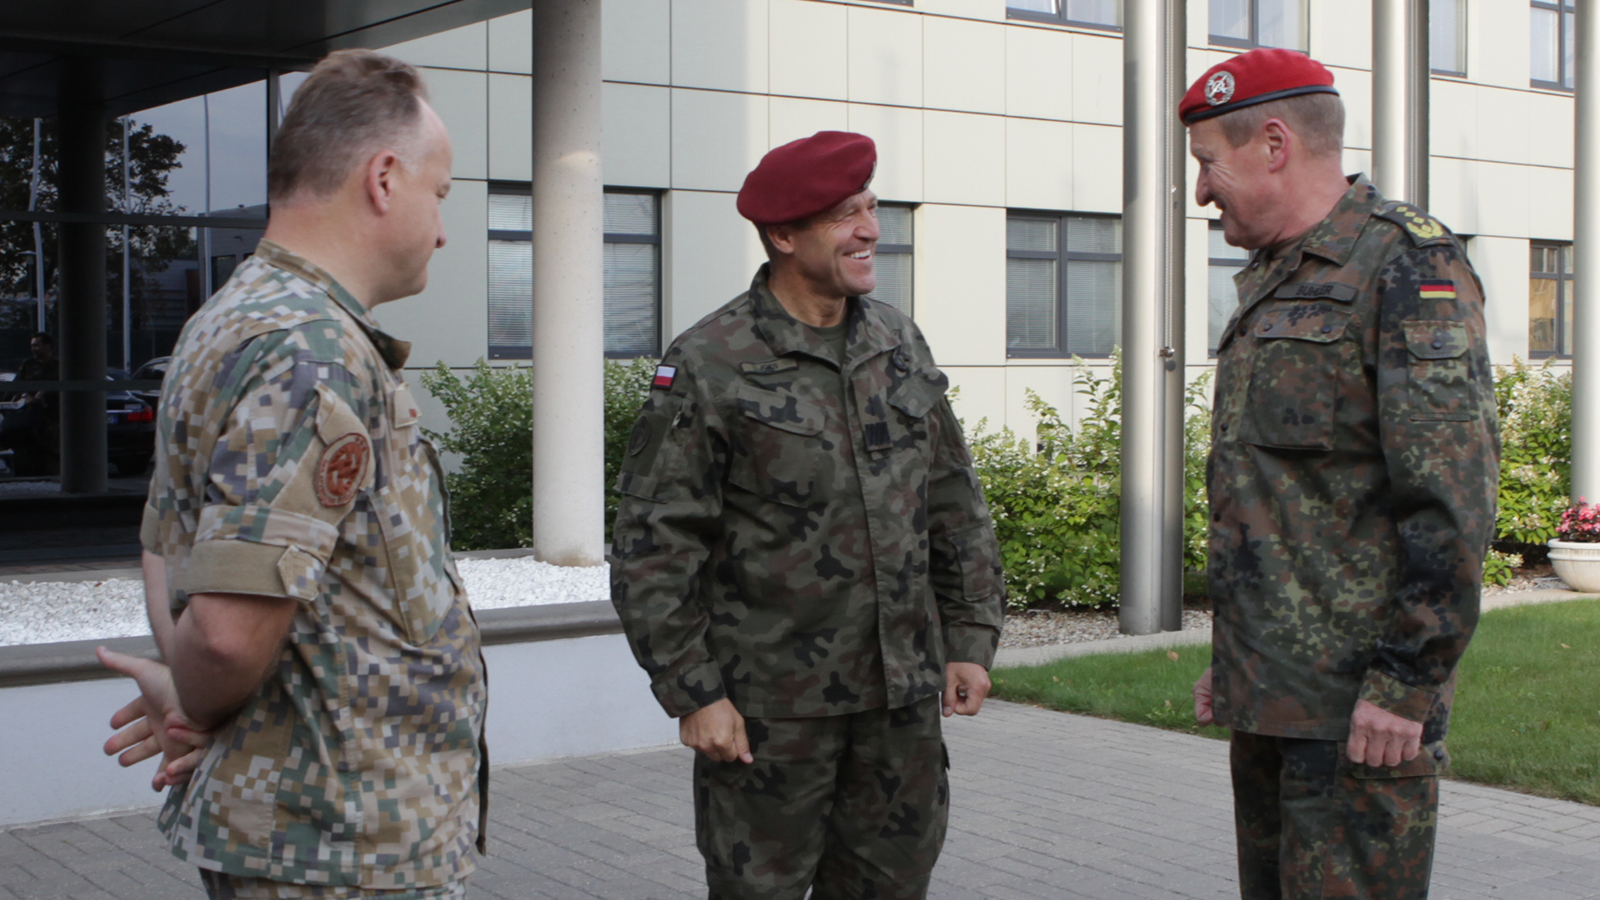 General Erhard Buhler Joint Force Command Brunssum, is greeted by Major General Adam Joks, JFTC Commander, and Brigadier General Imants Ziedins, Chief of Staff Latvian Armed Forces Joint HQ